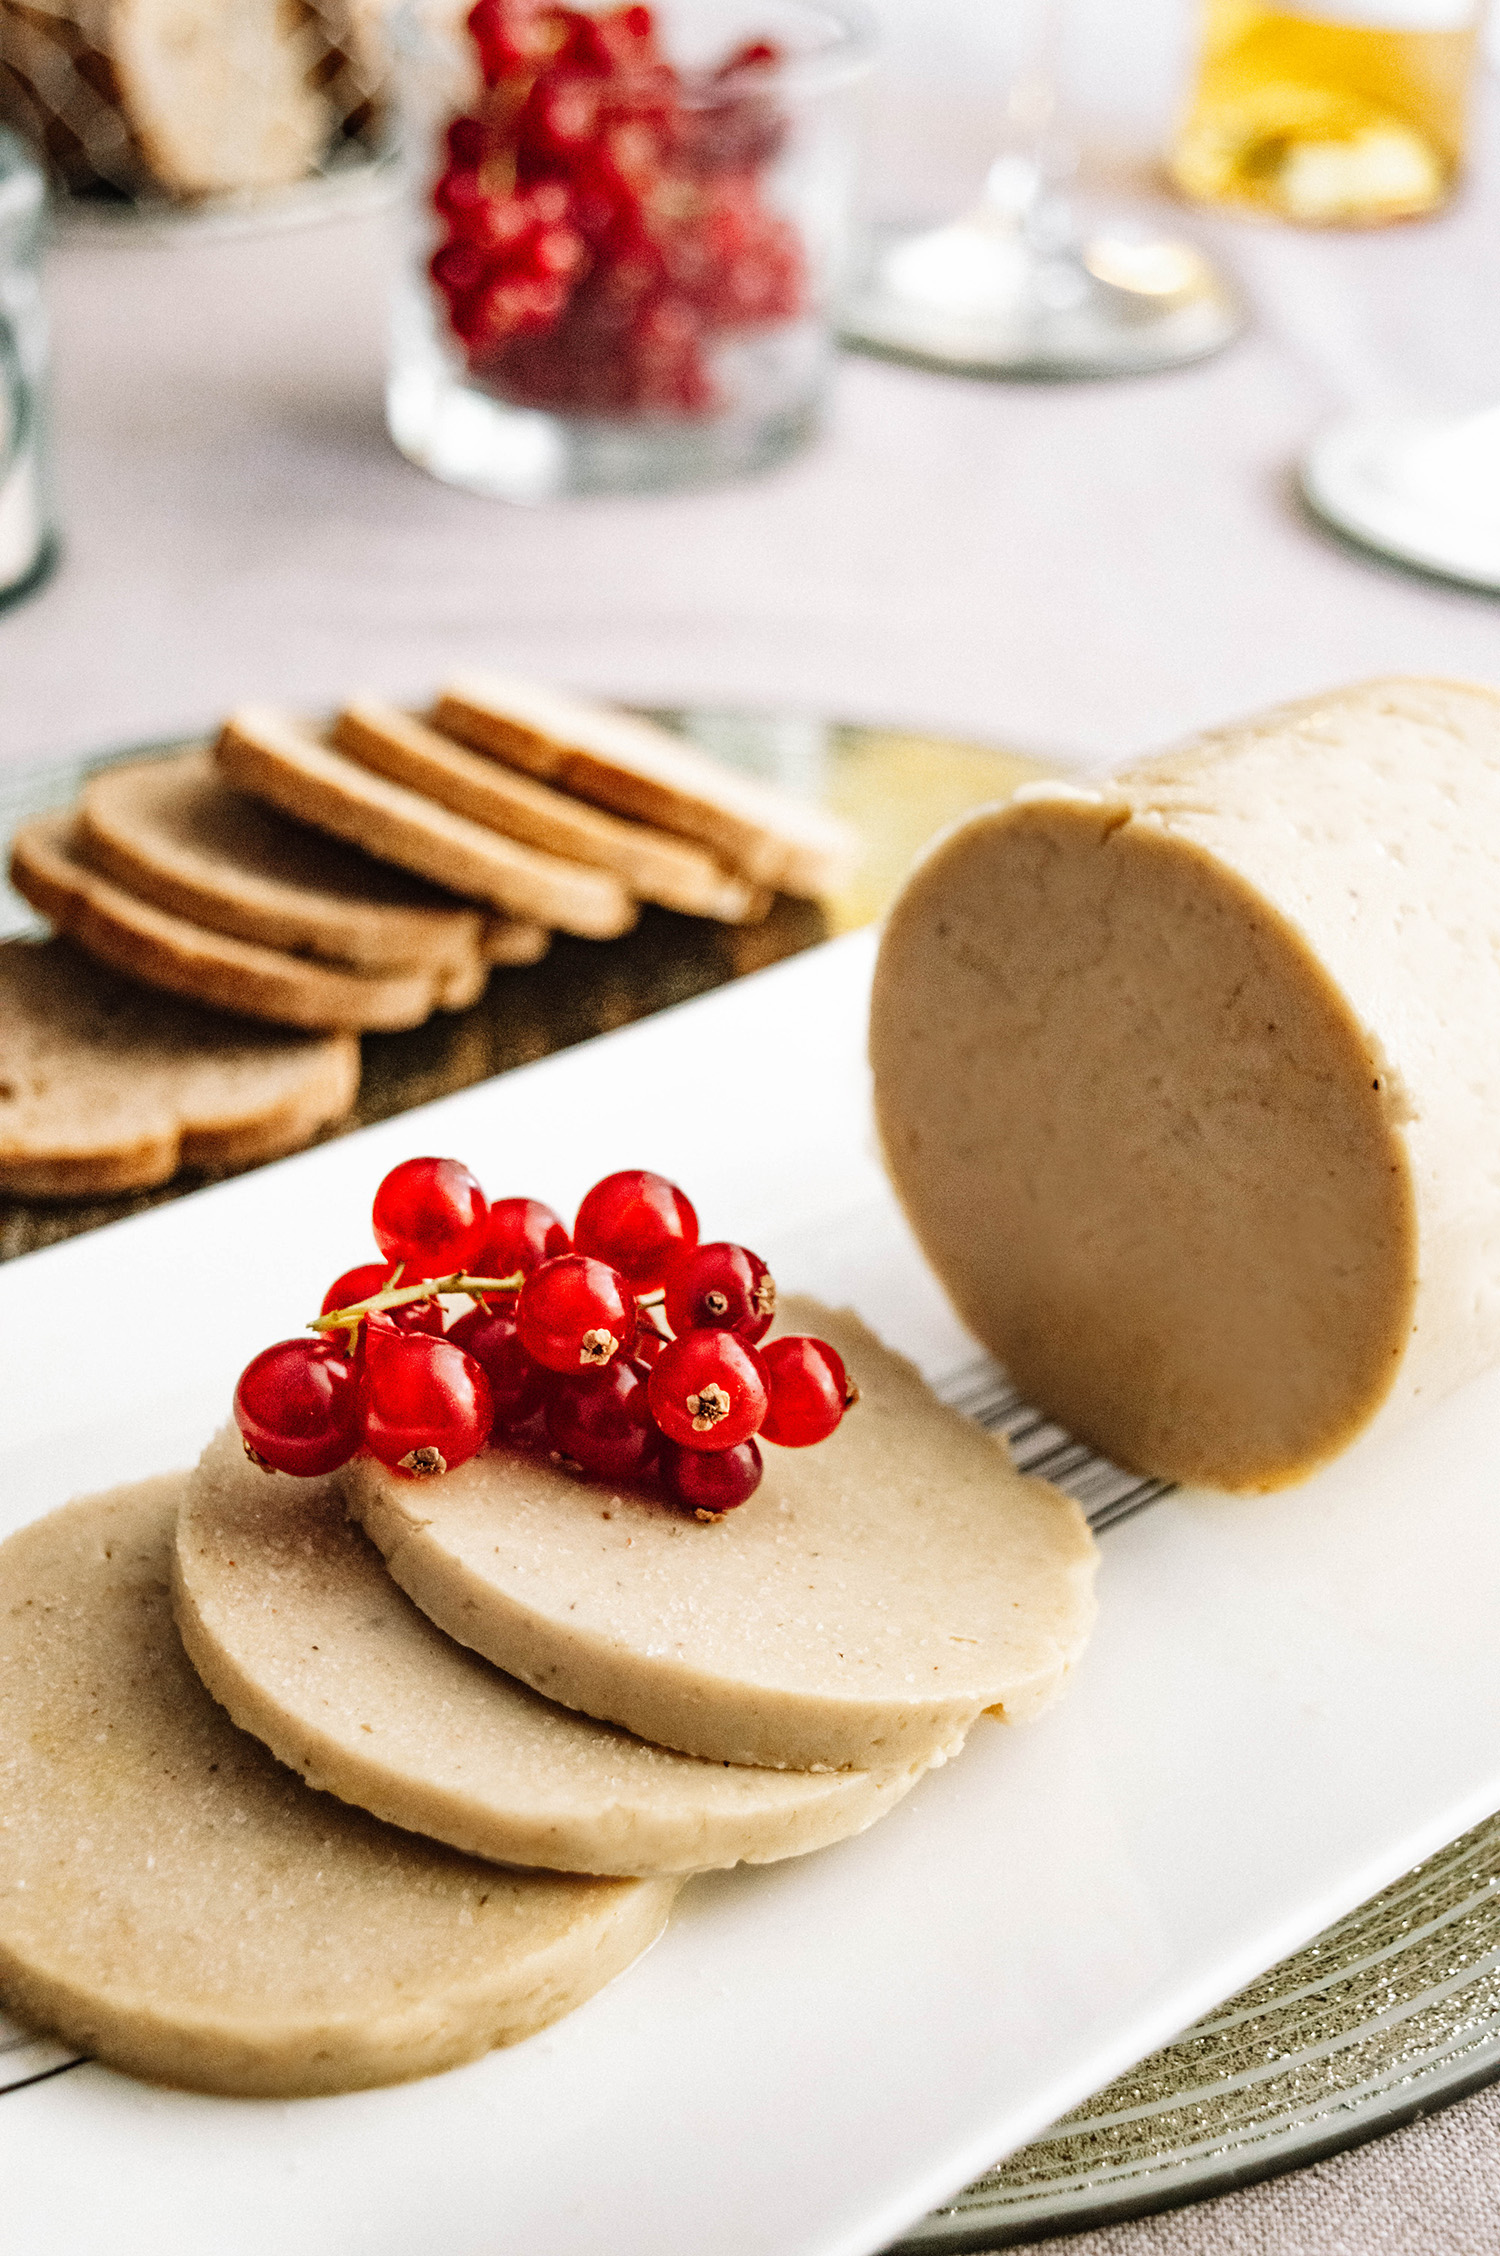 Faux Gras Le Foie Gras Vegan Inegalable Health Easier